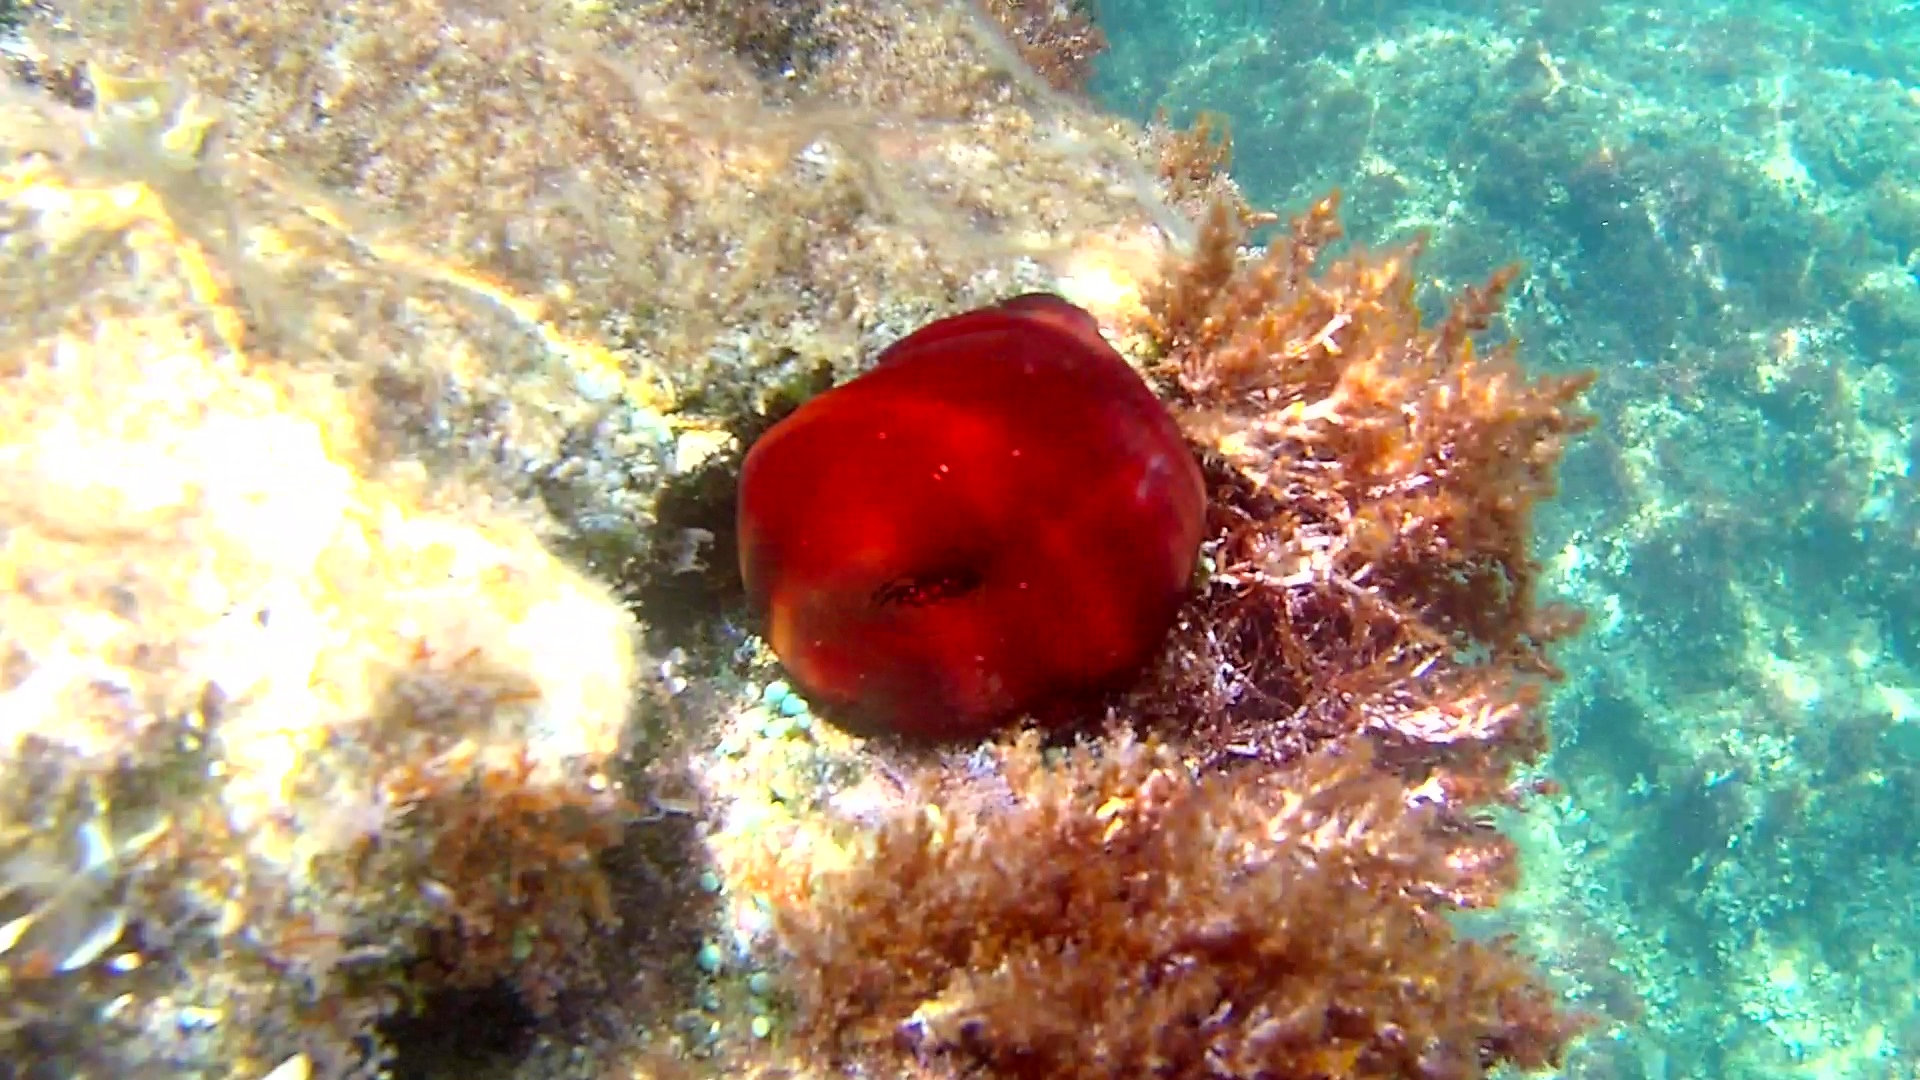 Pomodoro di mare – The Beadlet Anemone – Actinia equina – intotheblue.it – vlcsnap-2019-05-13-14h11m59s786